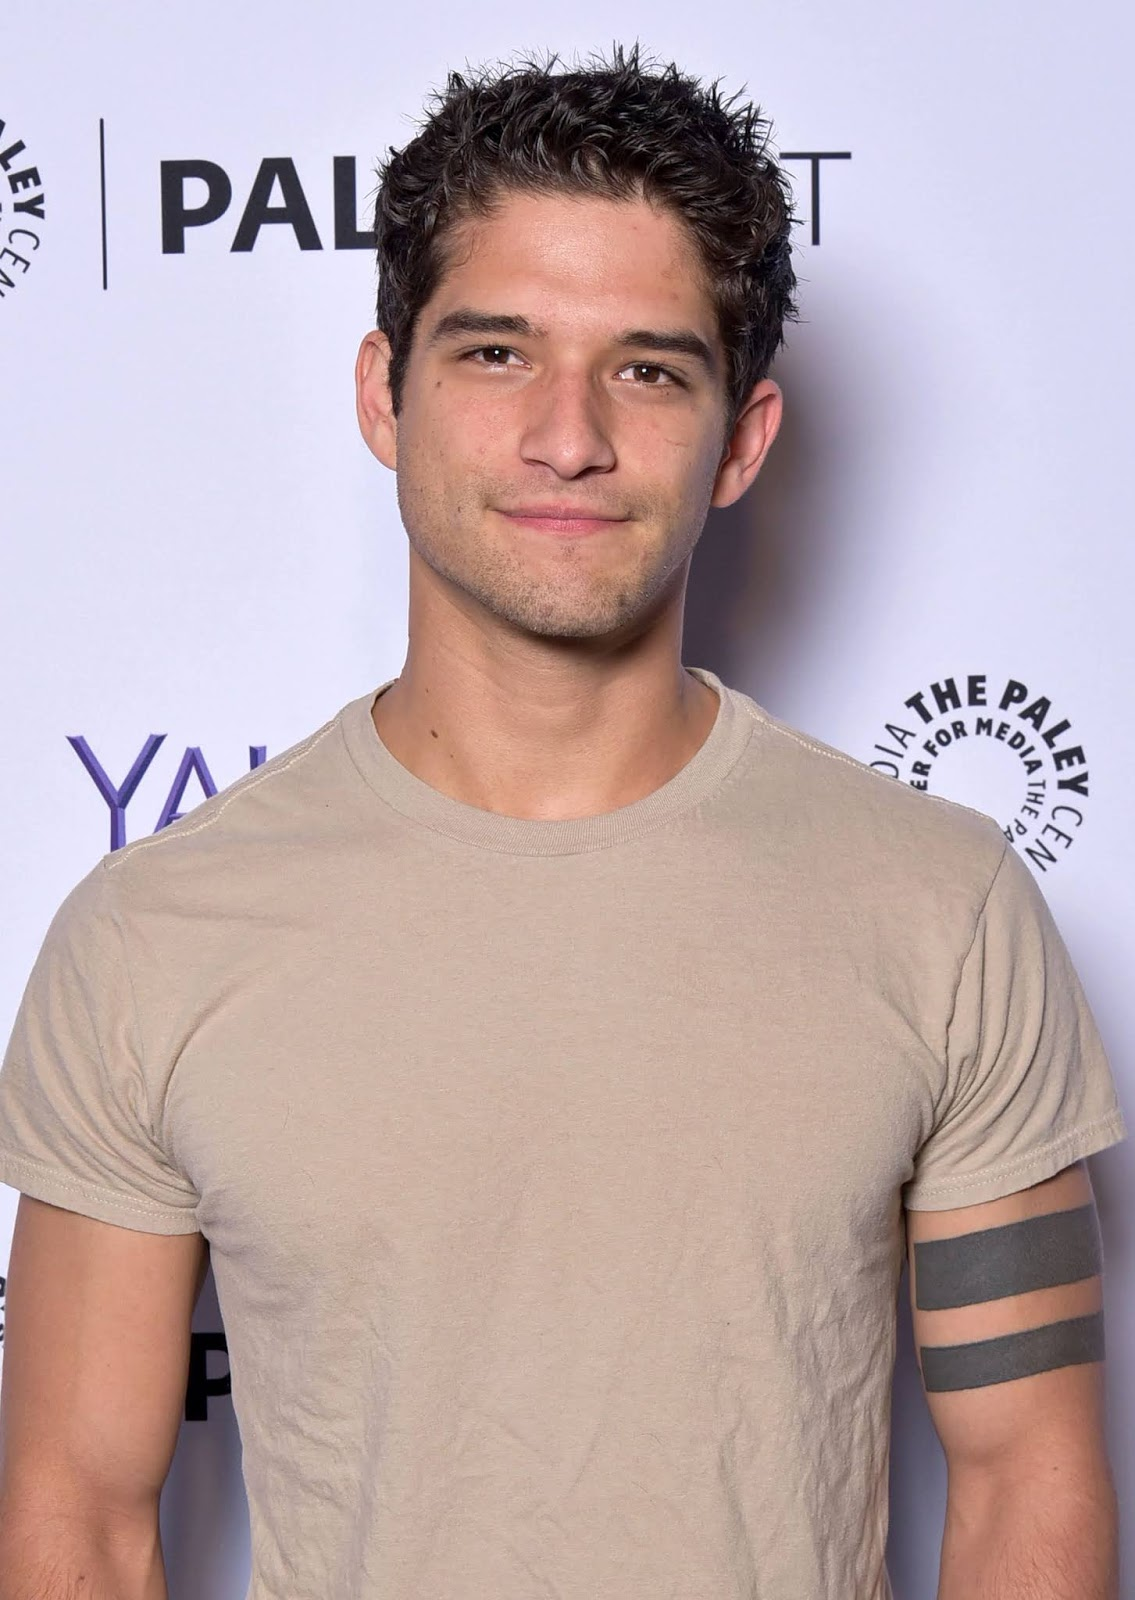 Tyler posey dating 2019